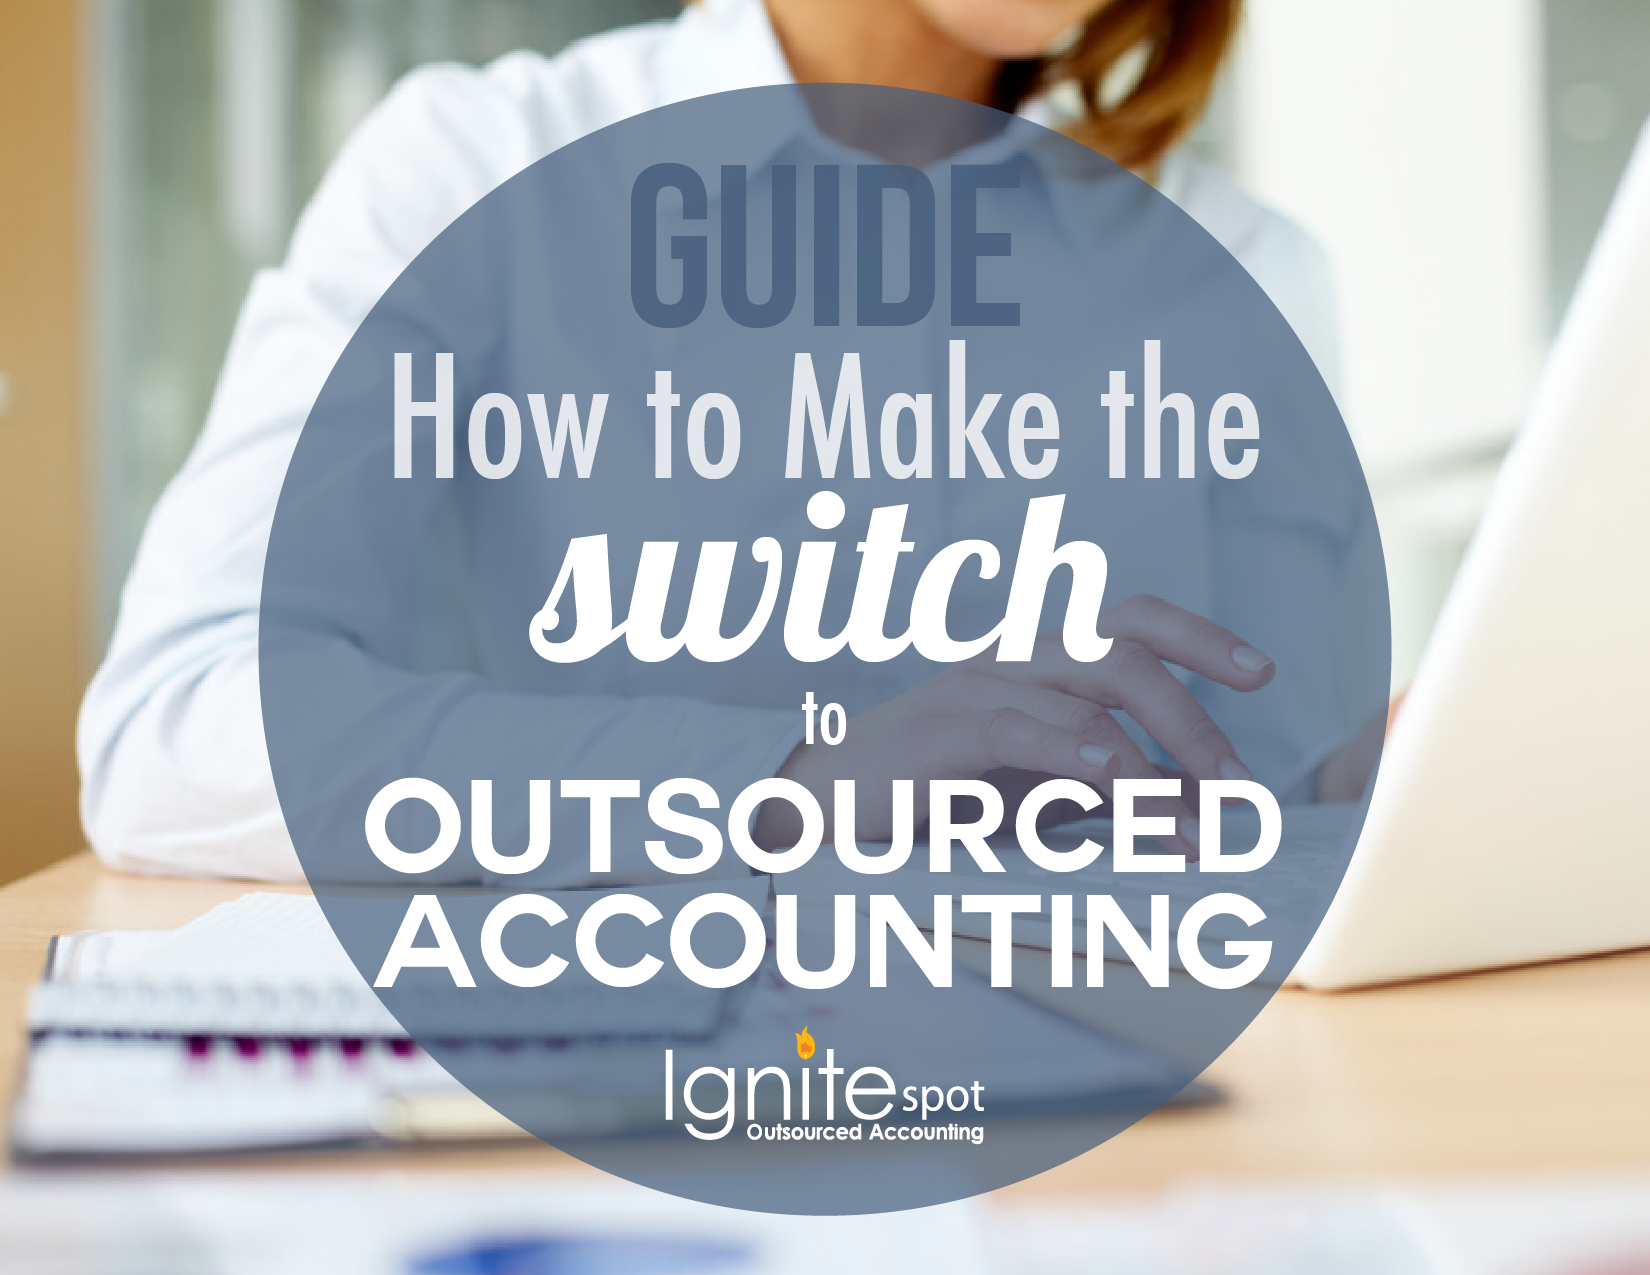 How to Switch to Outsourced Accounting : A step by step guide